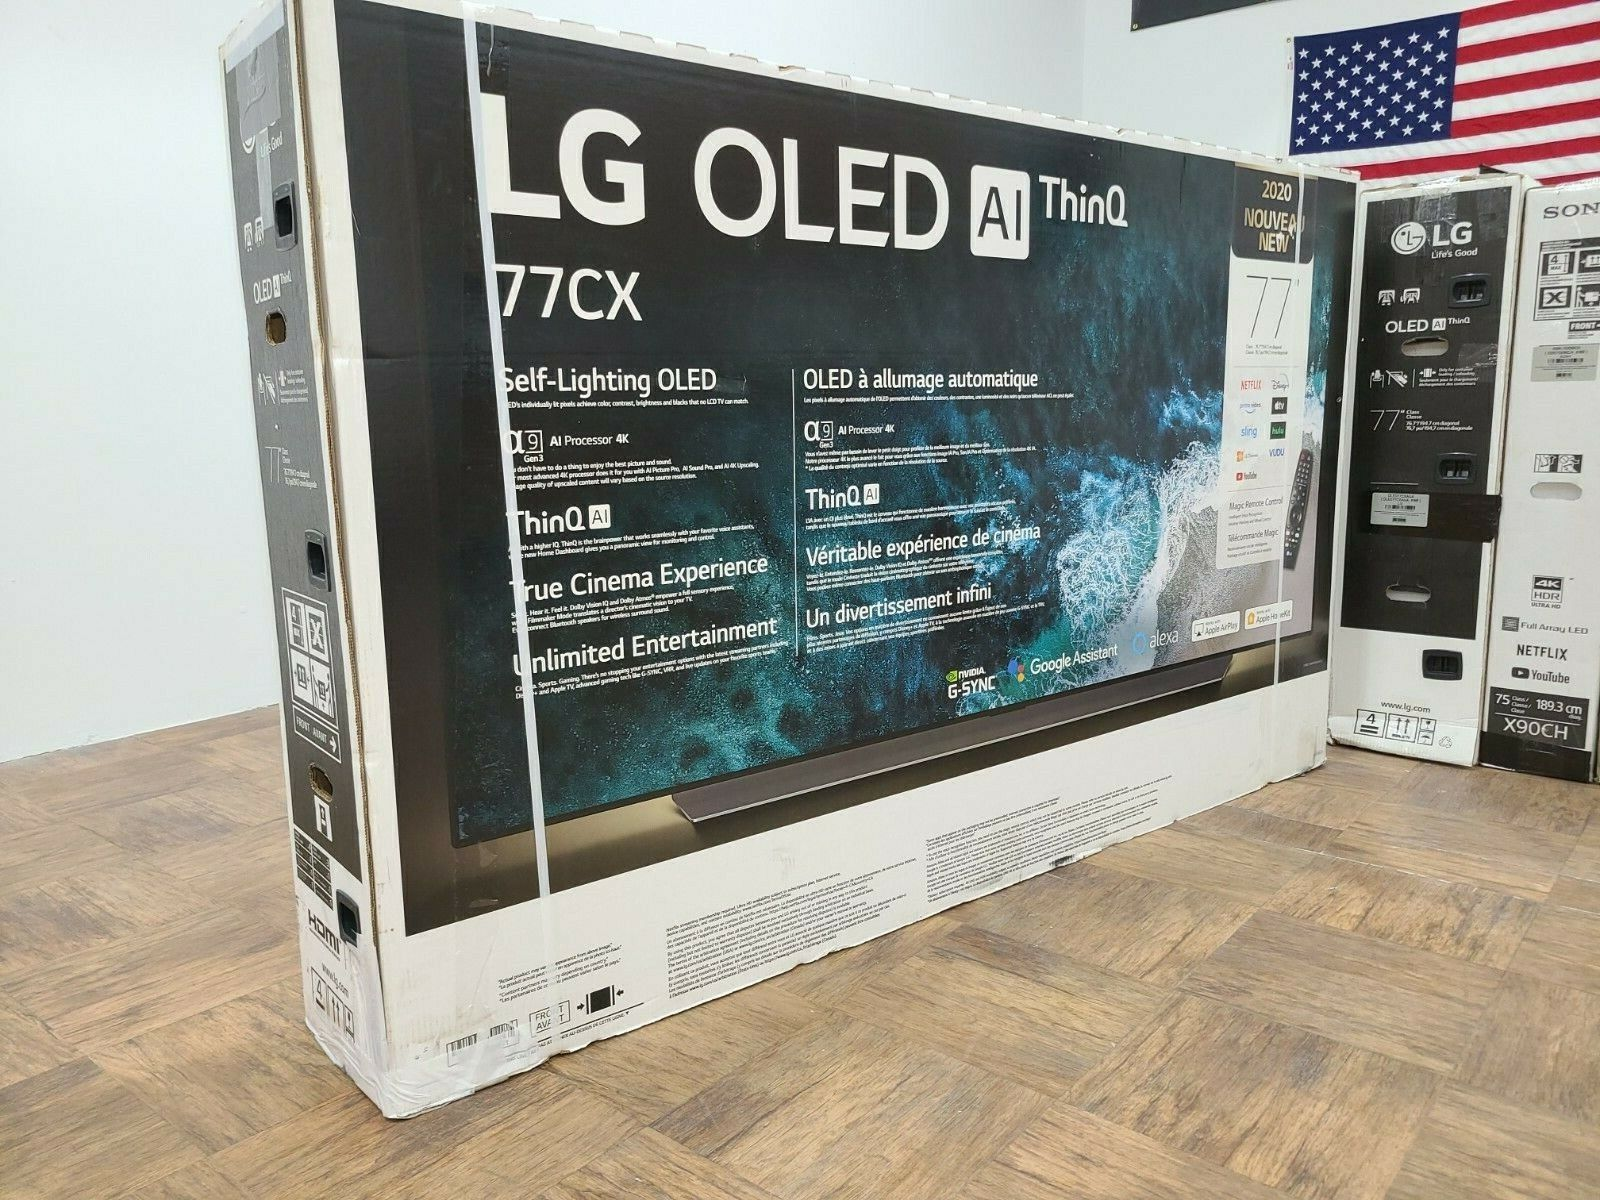 LG 77 OLED CX 4K SMART TV - SUPER THIN - HDMI 2.1 Open Box Never used. Available Now for 3199.99